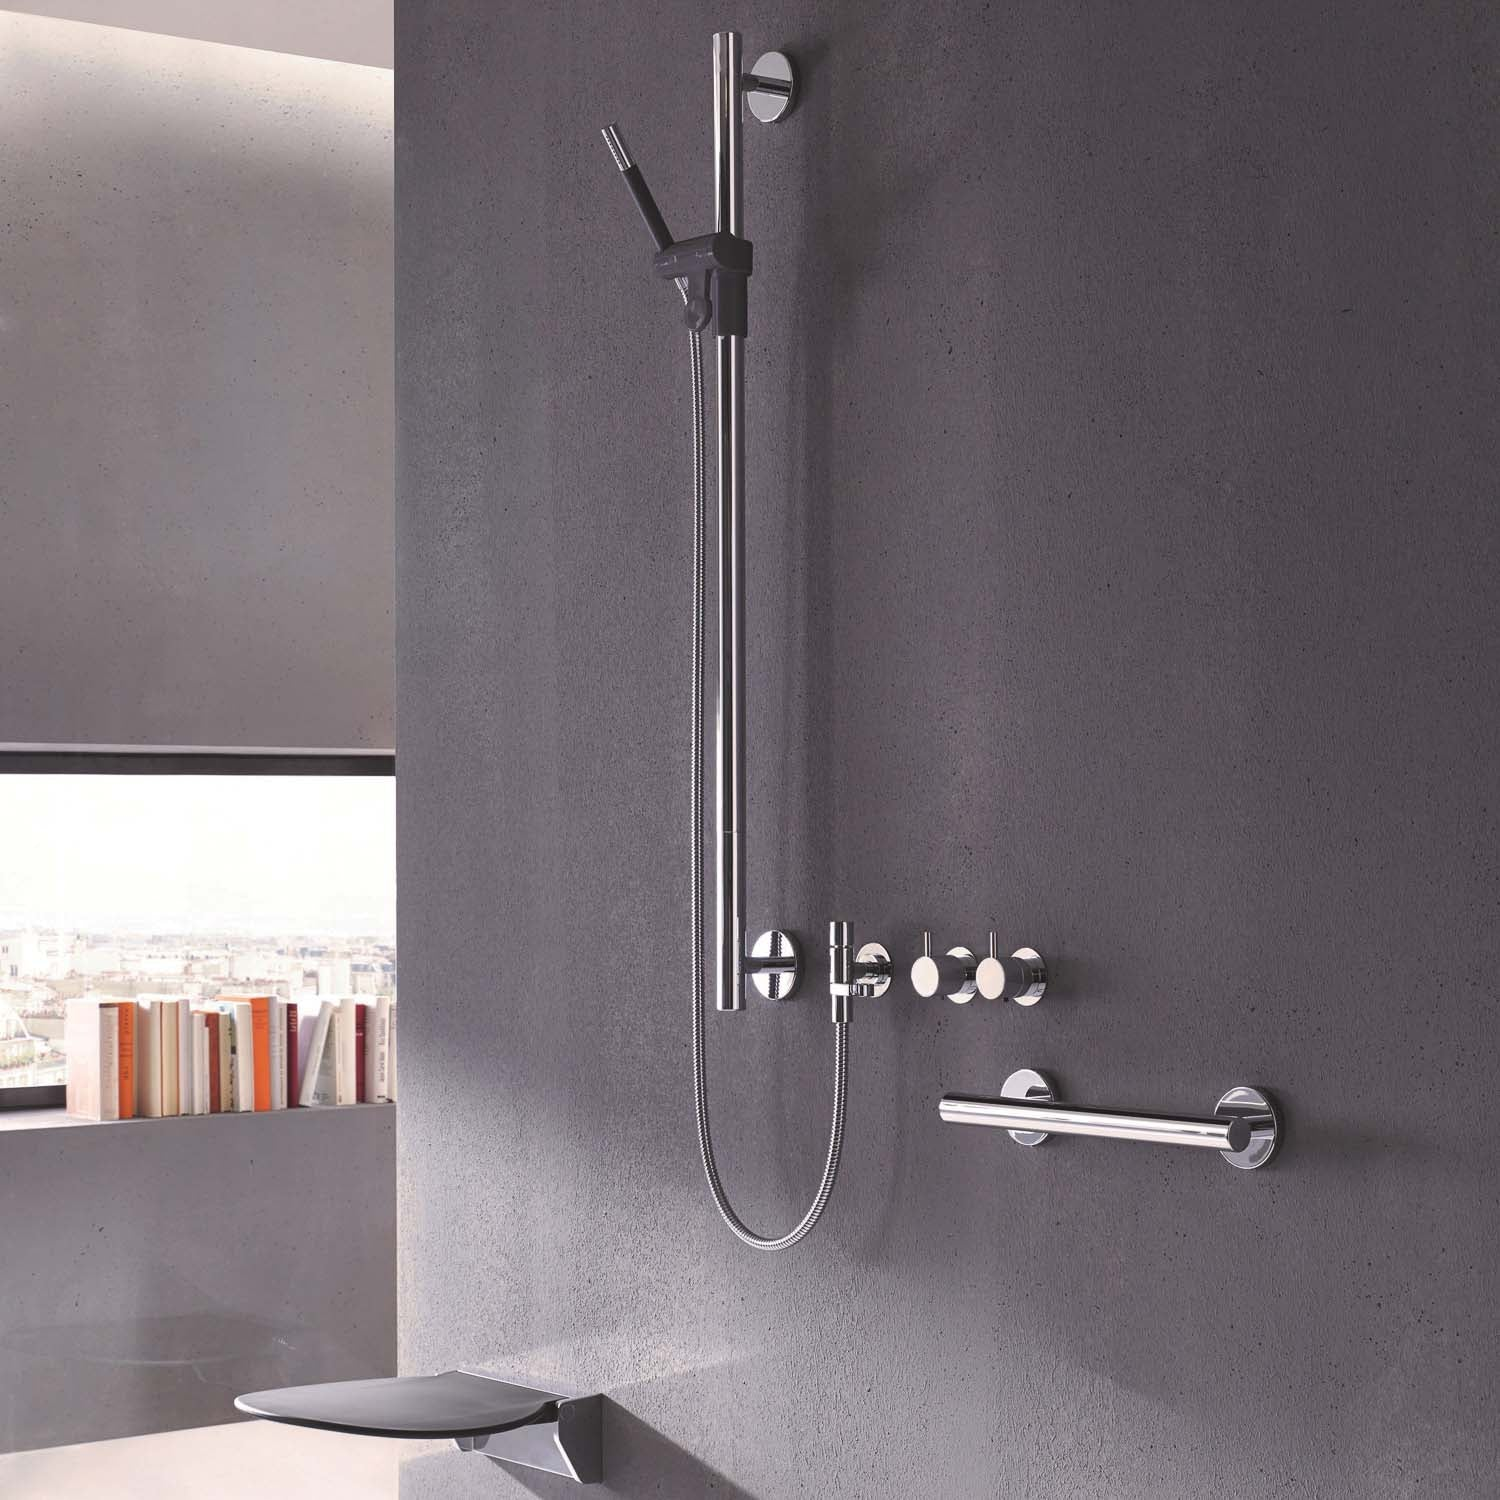 Circula Shower Seat with an anthracite grey seat and chrome bracket lifestyle image